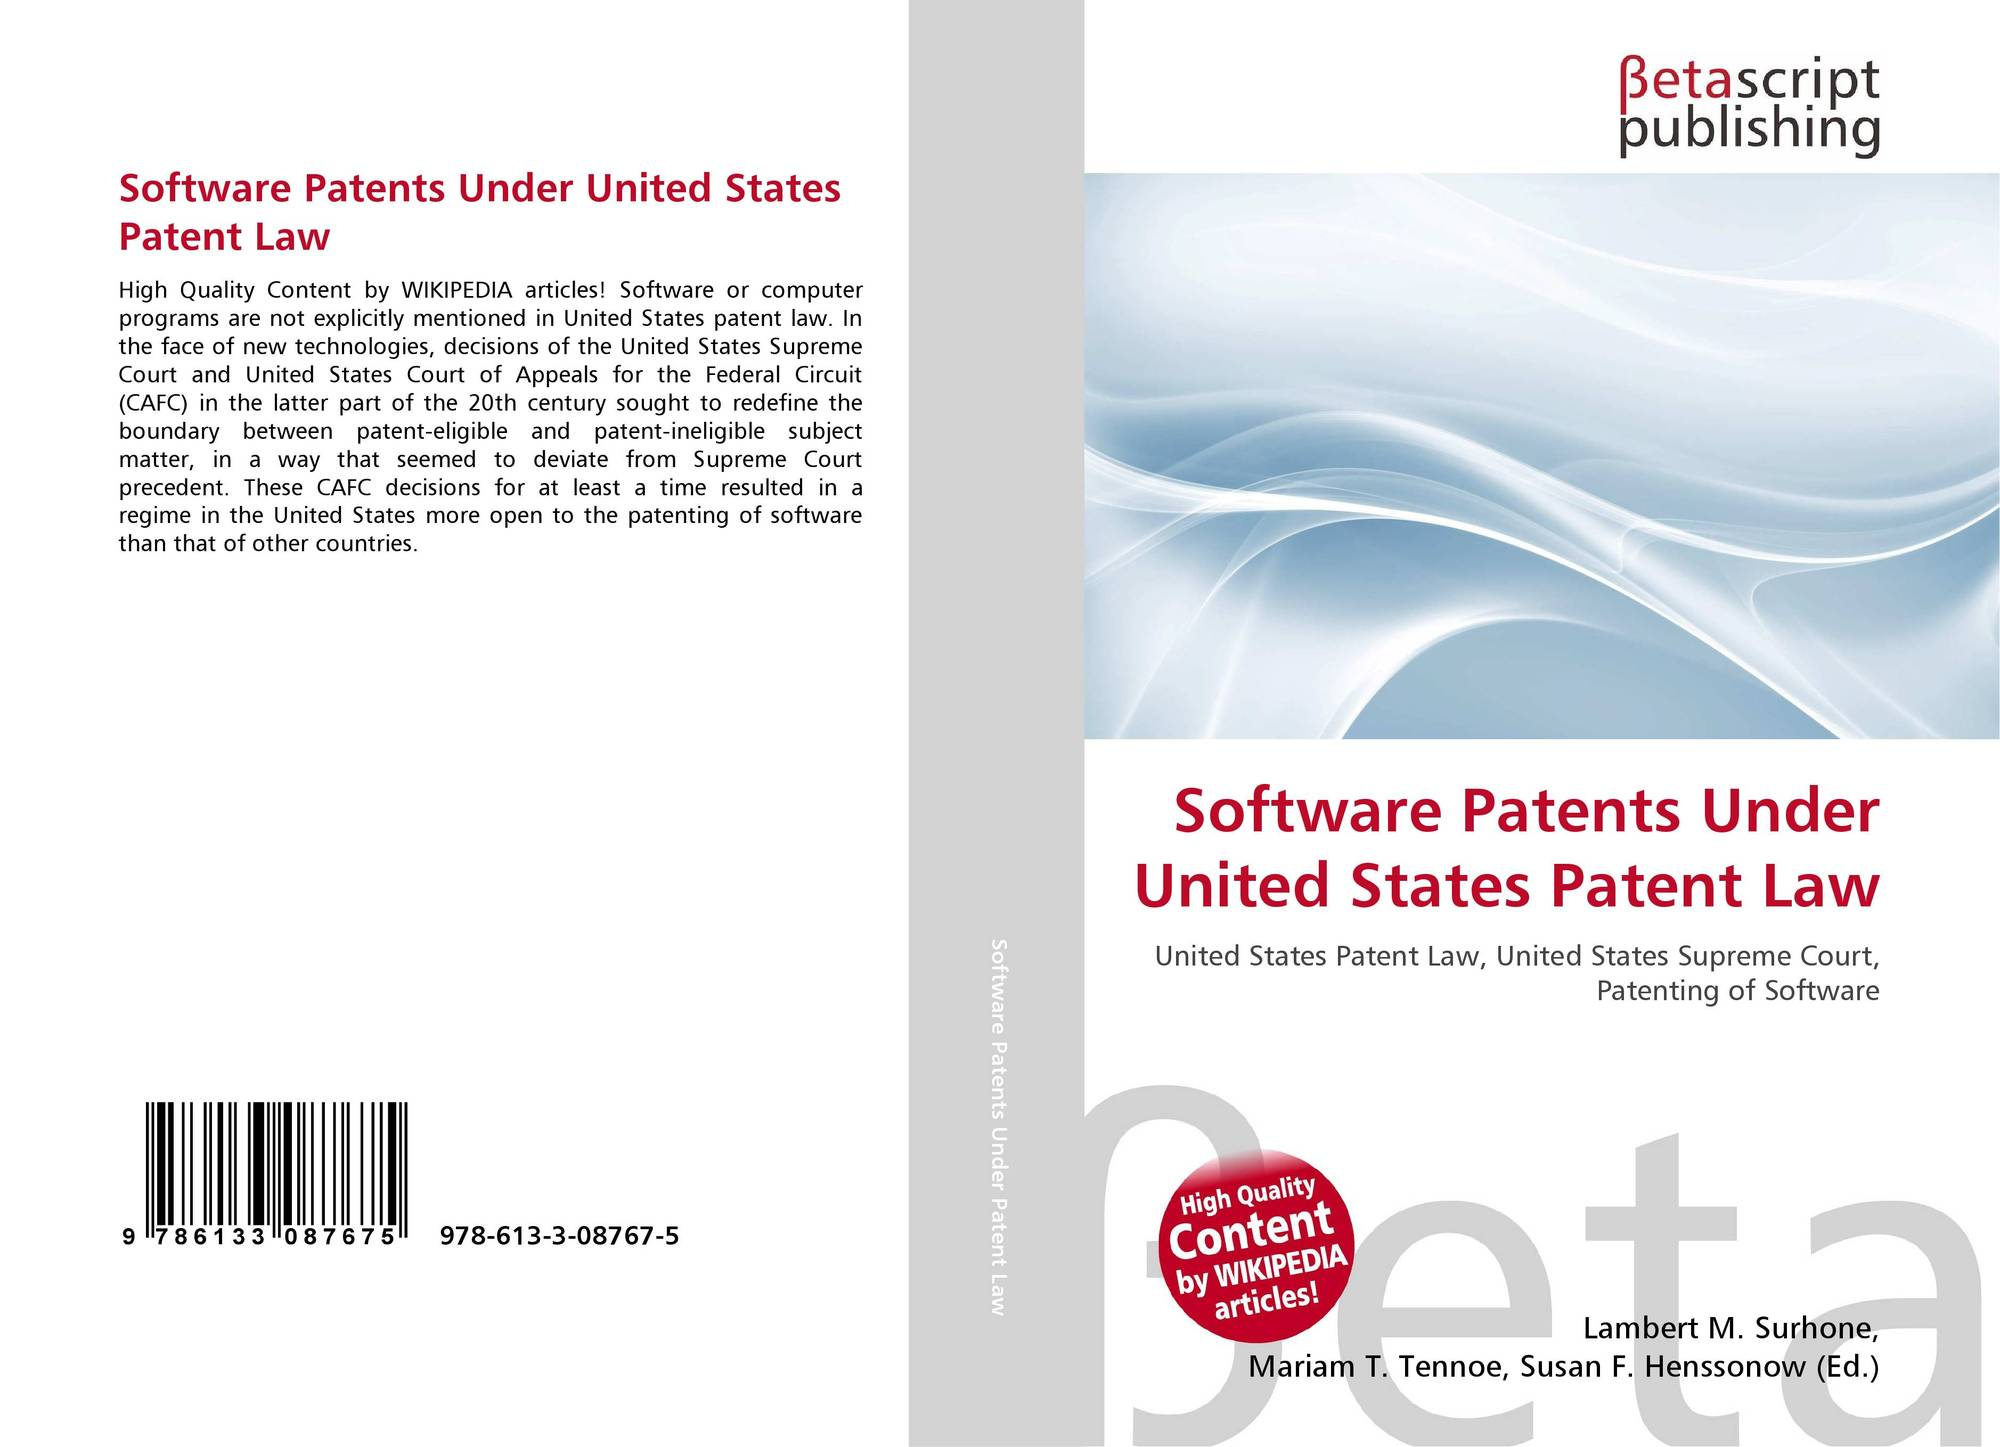 Utility patents - lynda.com